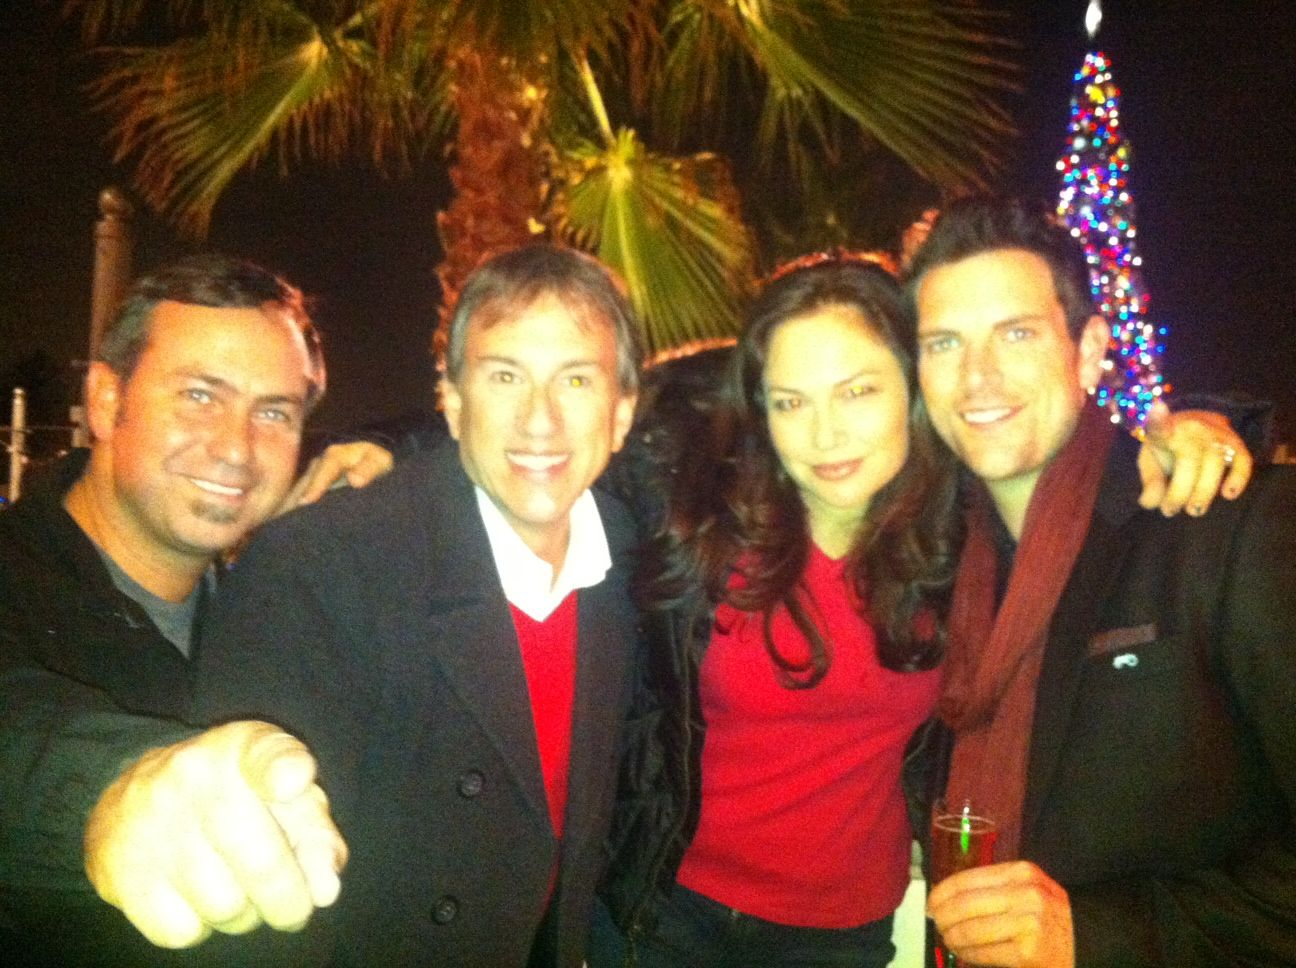 KOST 103.5 FM Holiday Party at Disney California Adventure ...